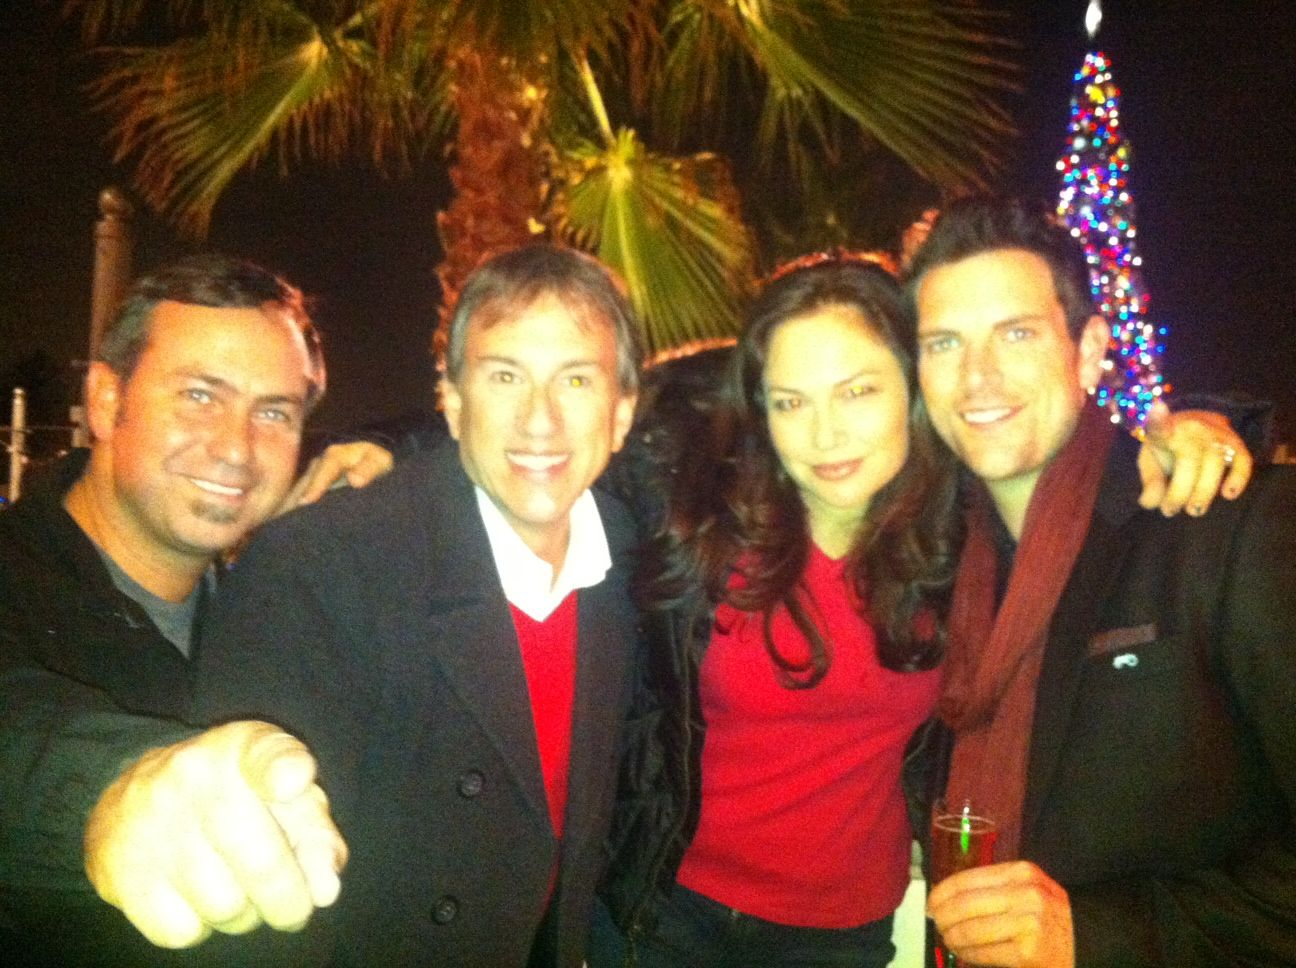 KOST 103.5 FM Holiday Party at Disney California Adventure ...